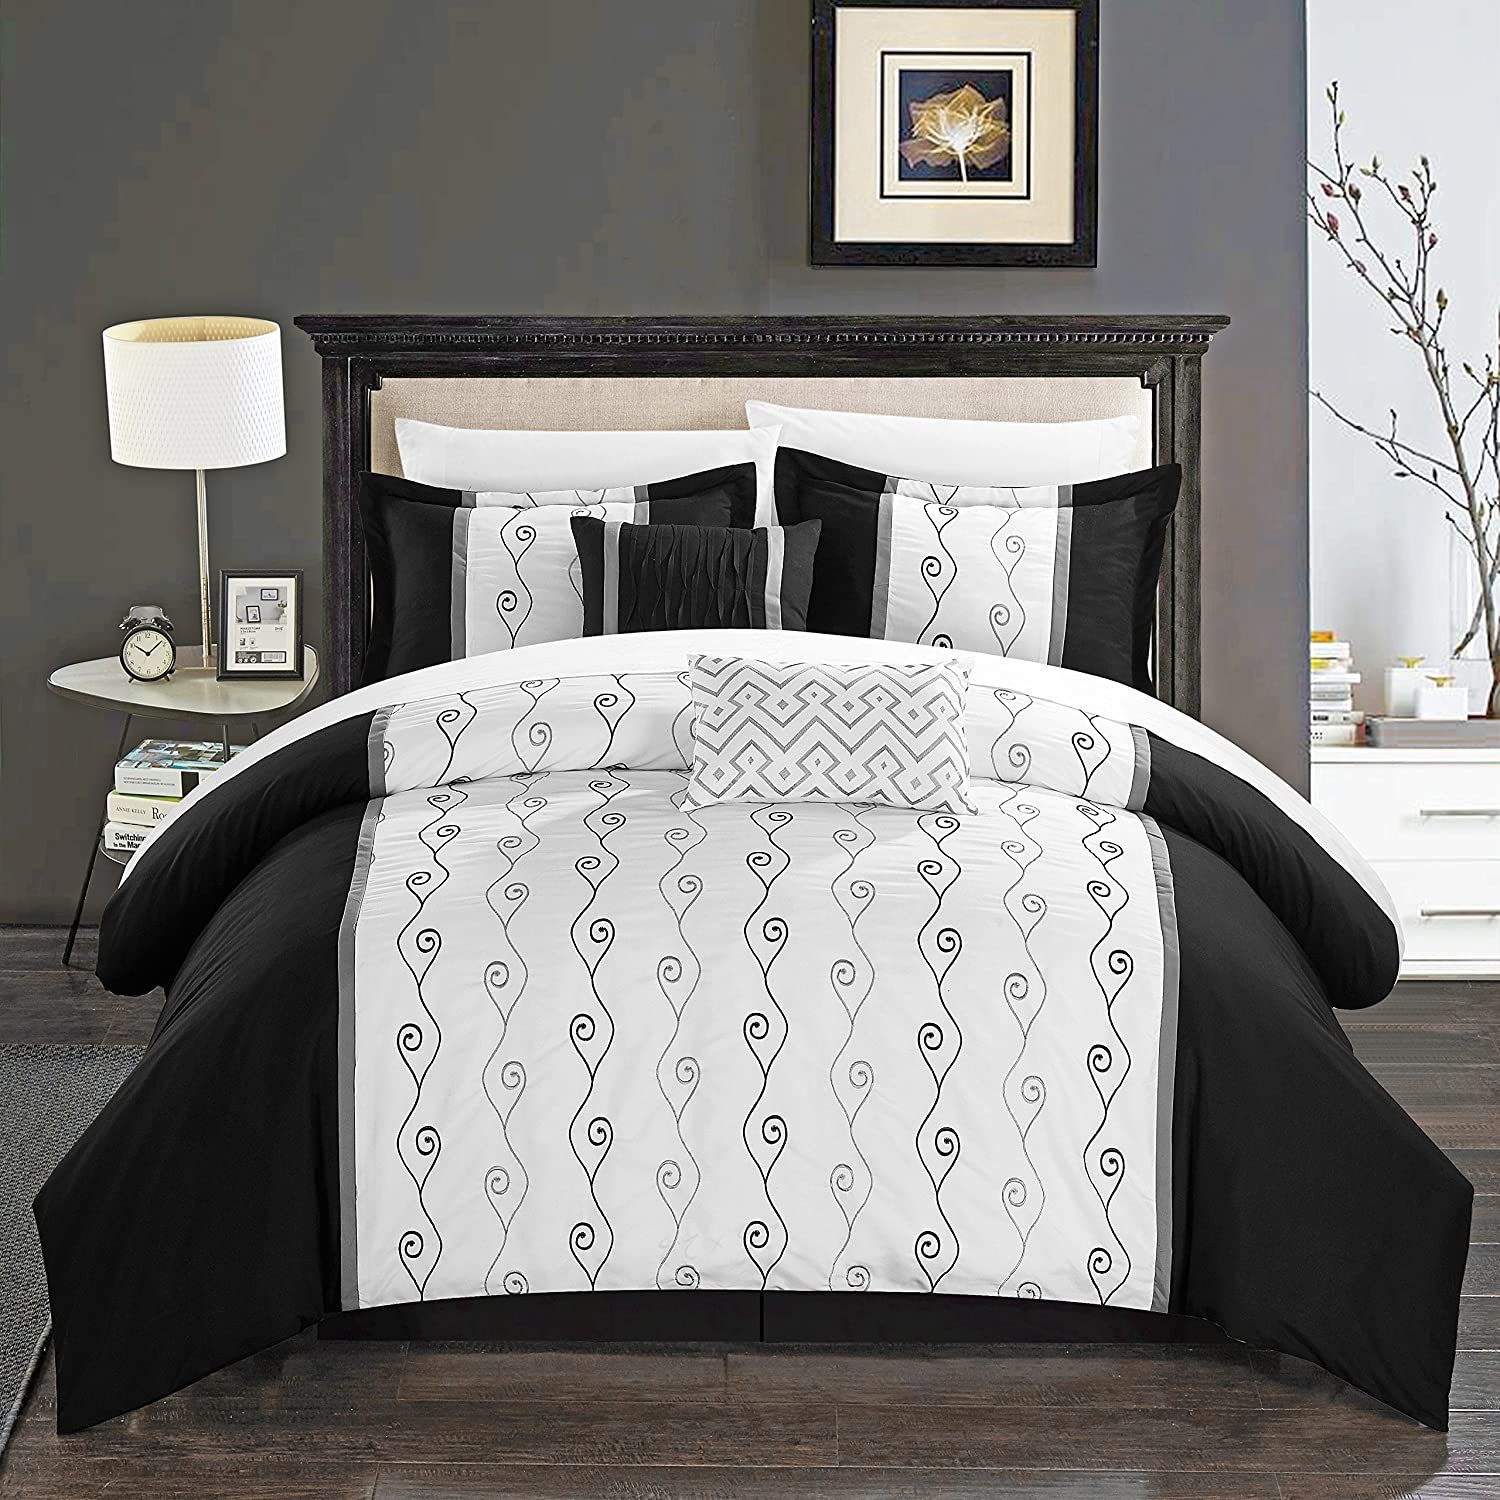 Chic Home Priston 6 Piece Comforter Set Color Block Embroidered Bedding - Bed Skirt Decorative Pillows Shams Included King Black